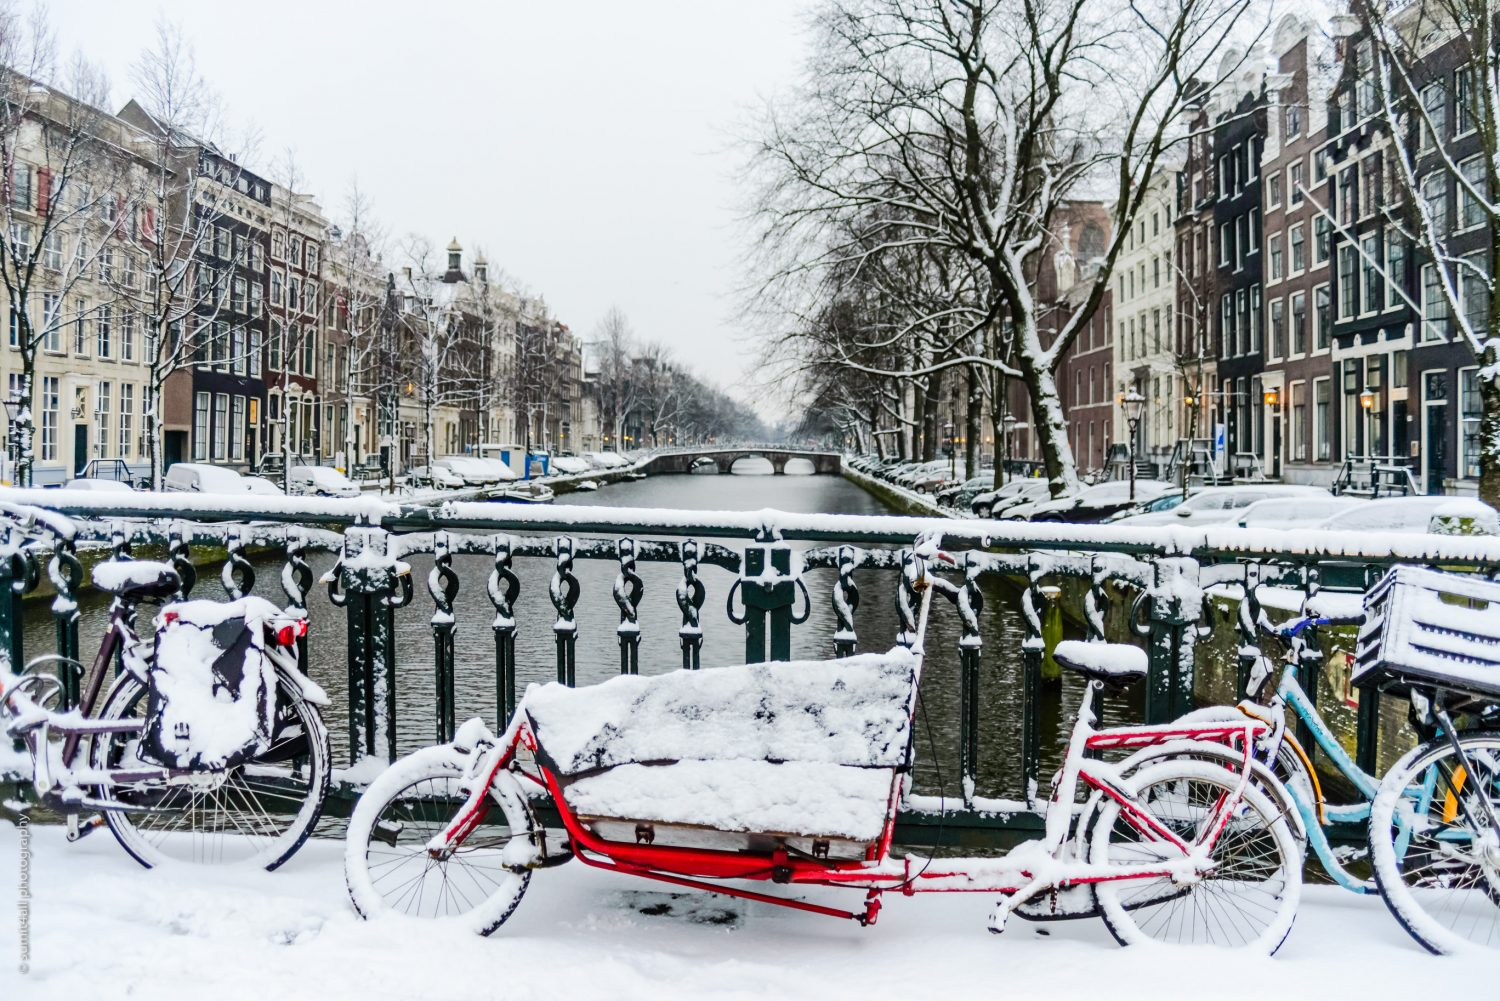 Bikes in Amsterdam After Fresh Snowfall in Winters